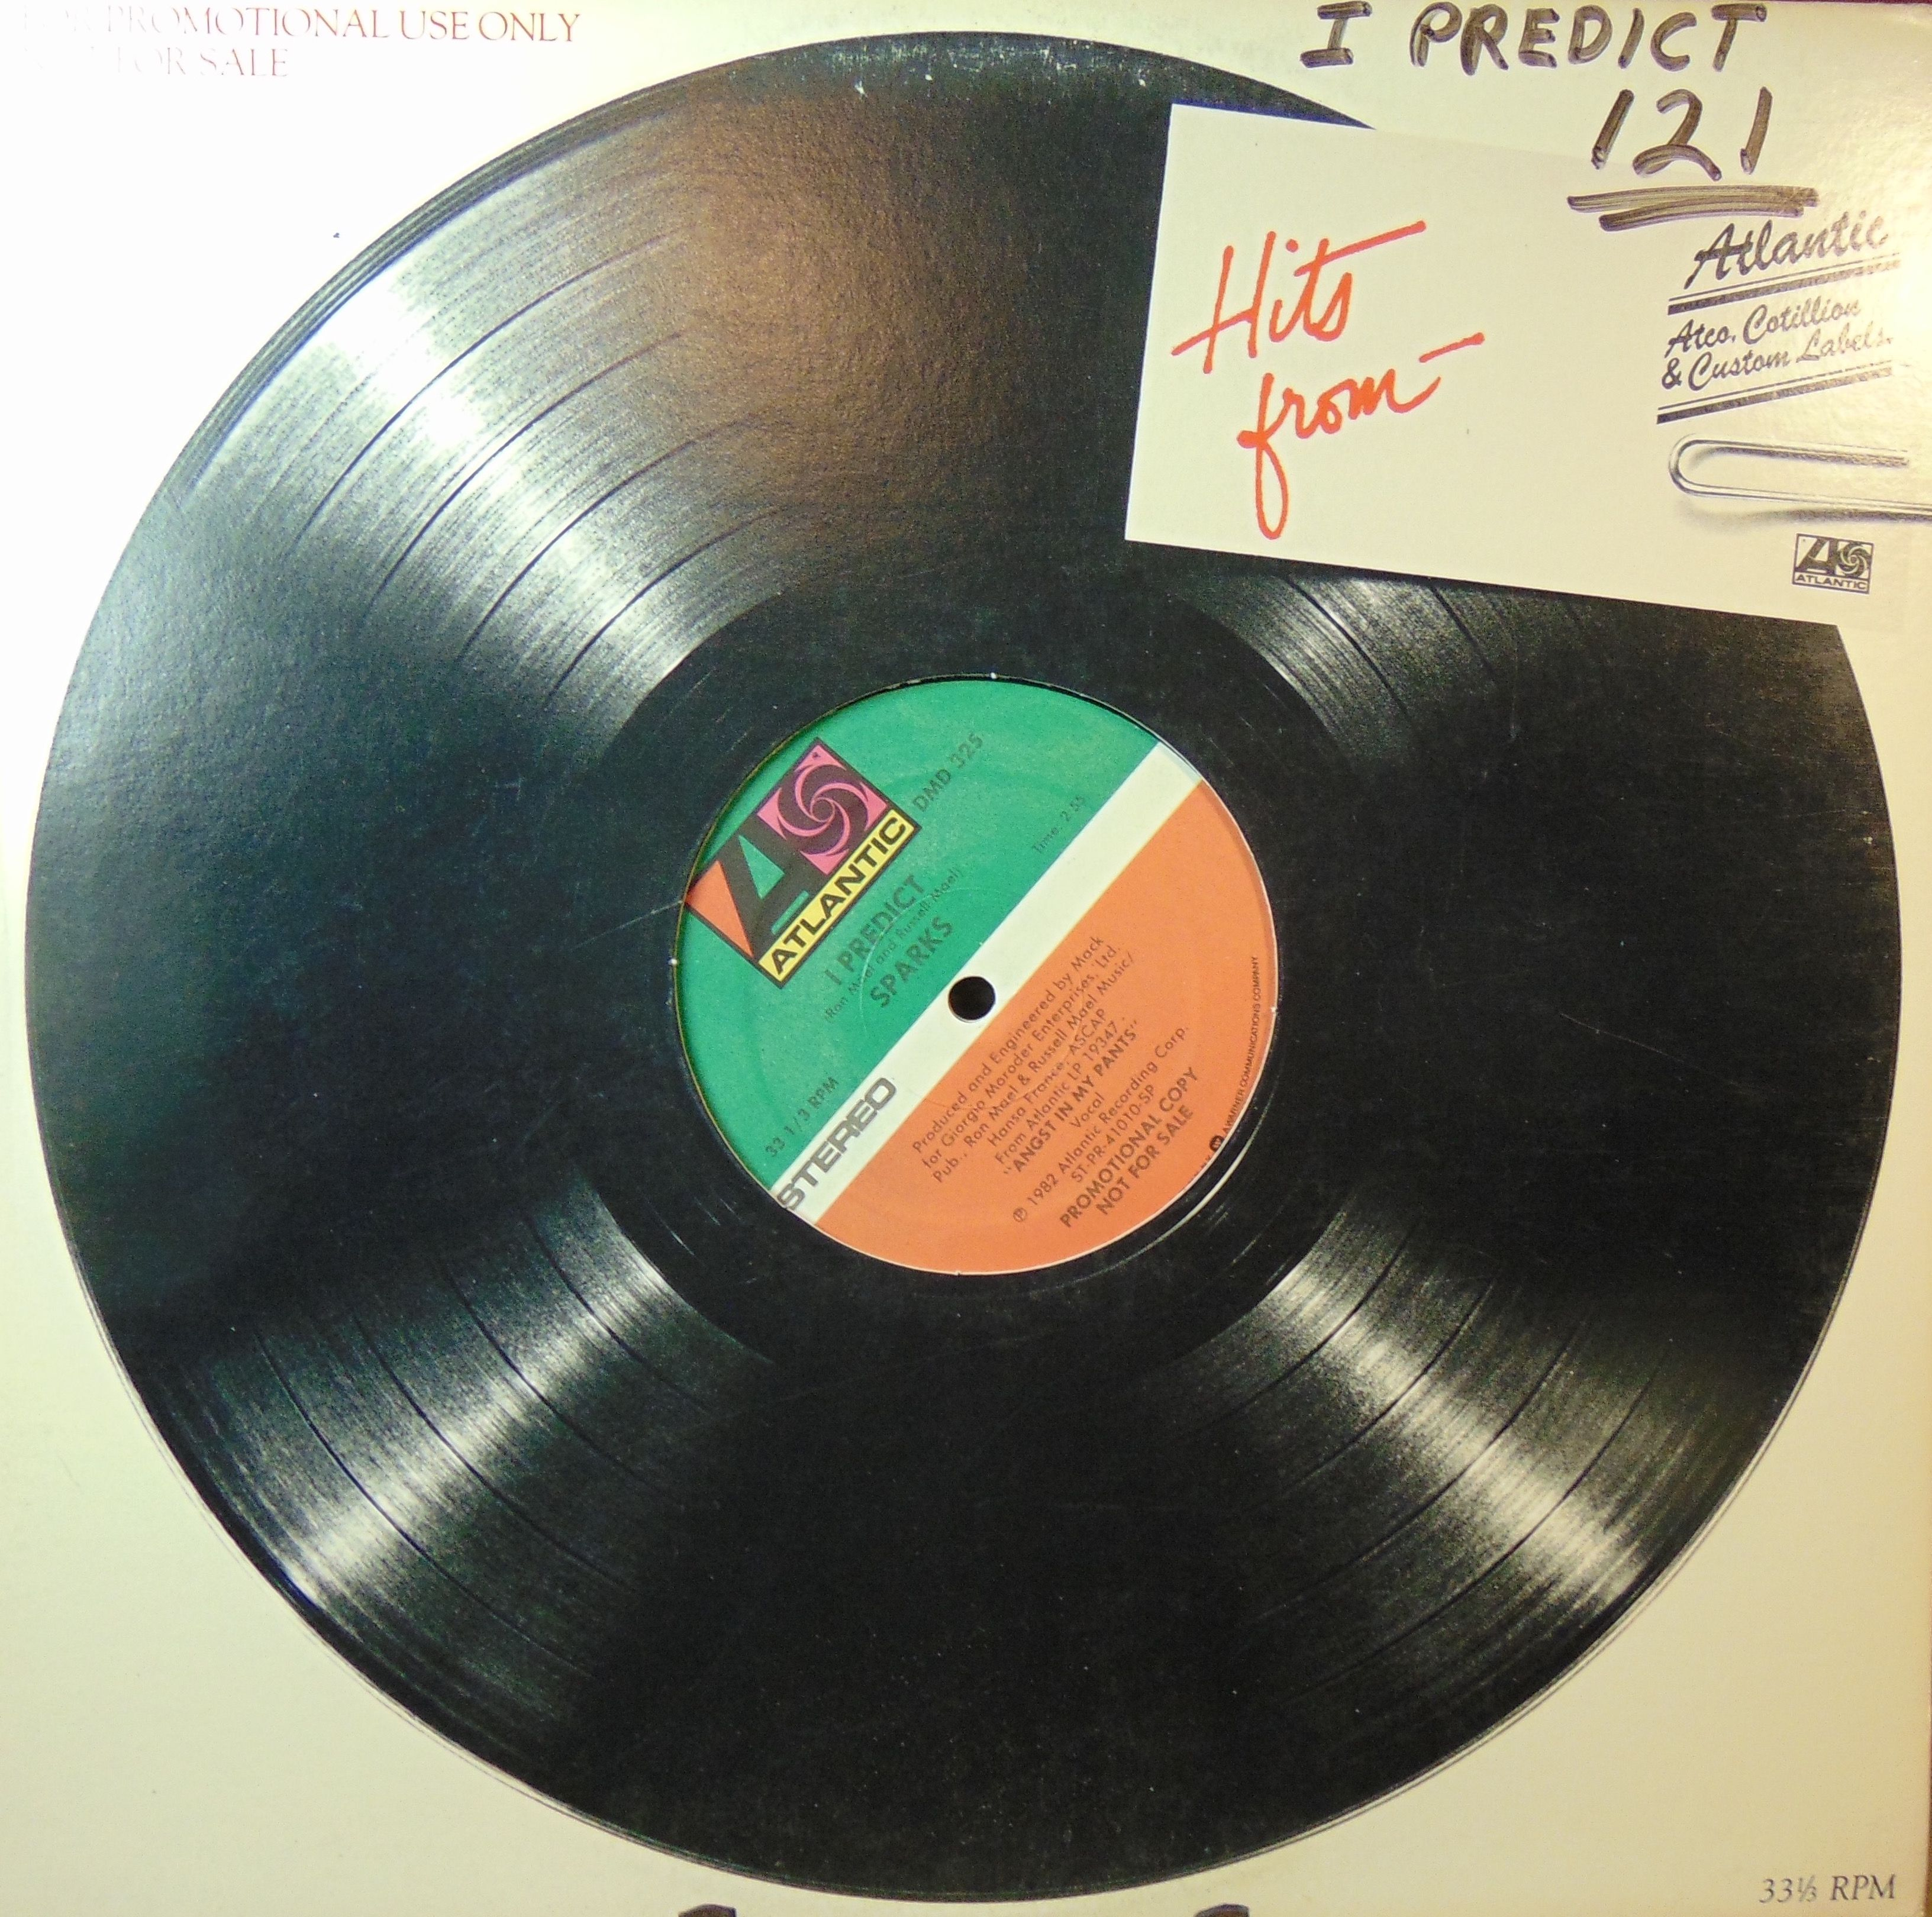 Sparks I Predict Atlantic Records 12 Vinyl Single 1982 Promo In 2020 Vinyl Records Atlantic Records Records